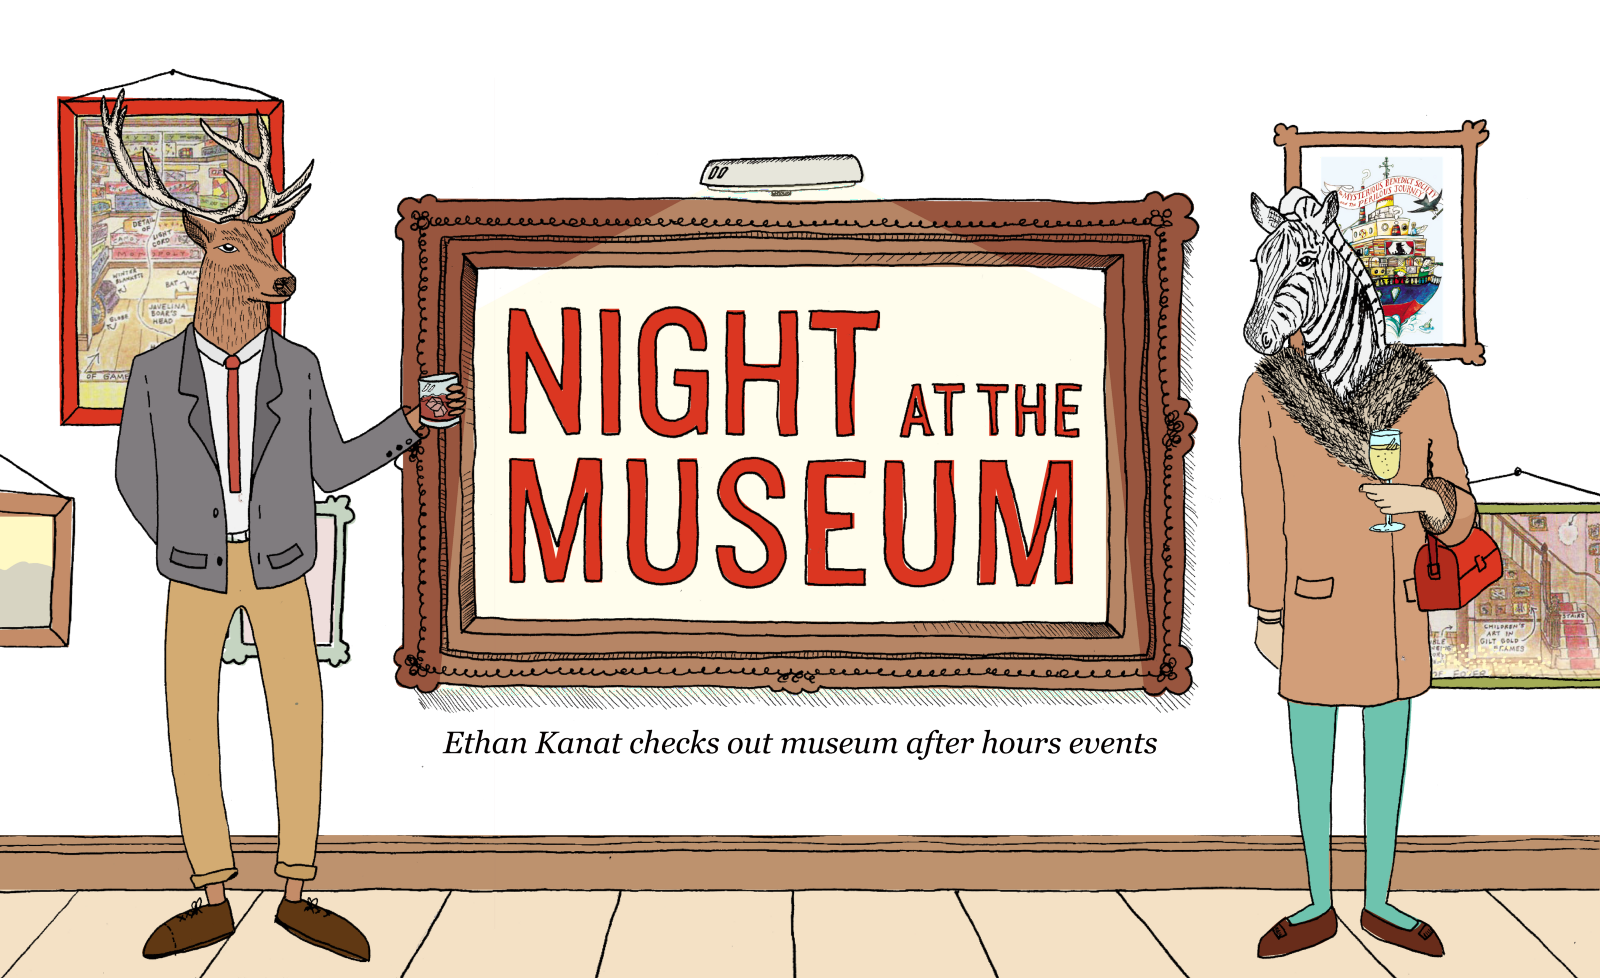 Night at the museum. Number 1 clipart bold